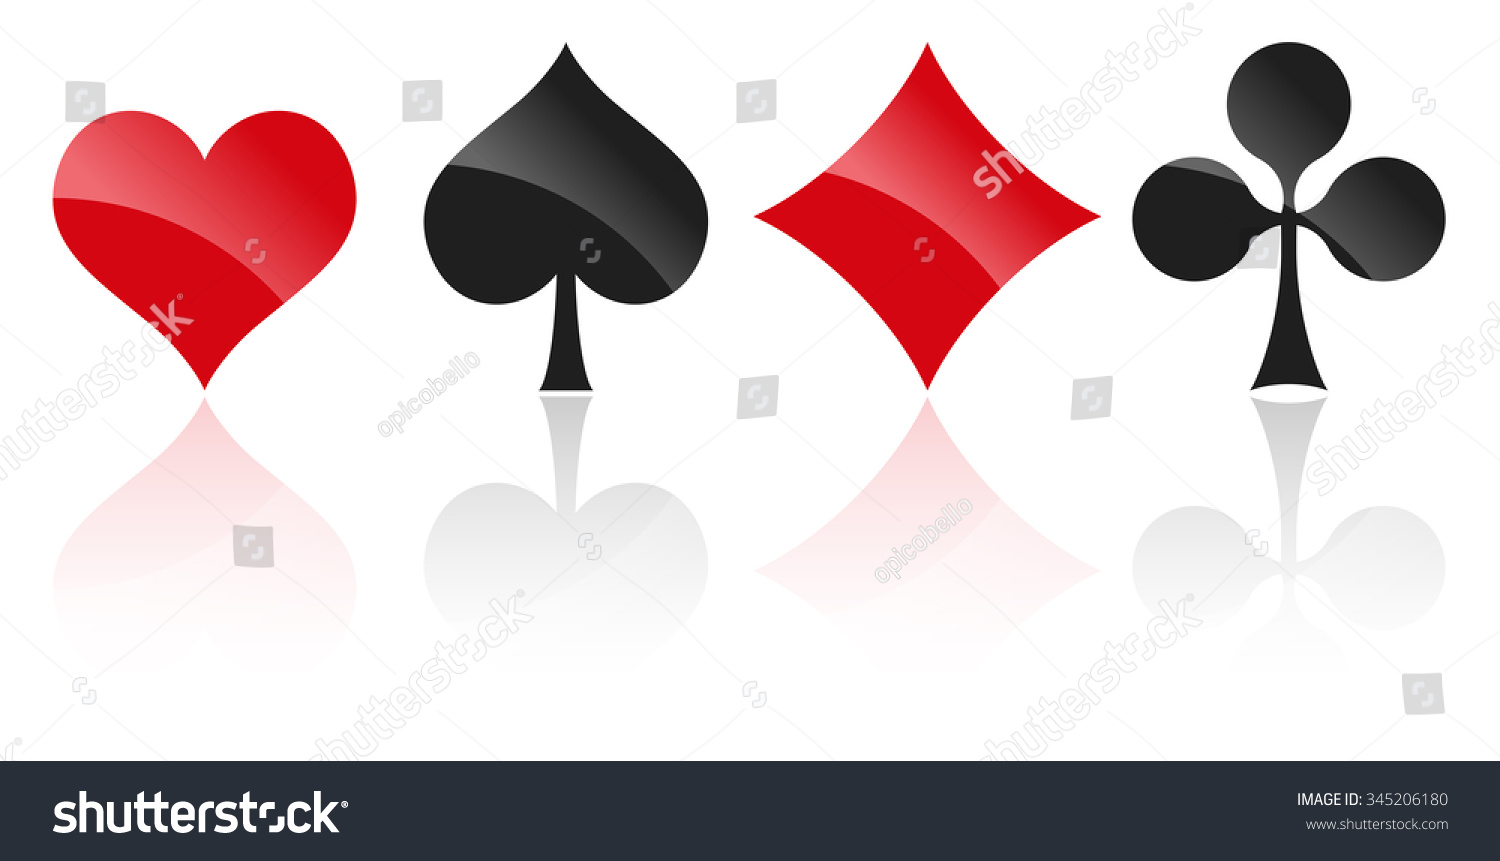 French playing cards symbols hearts tiles stock vector 345206180 french playing cards symbols hearts tiles clovers and pikes with reflection biocorpaavc